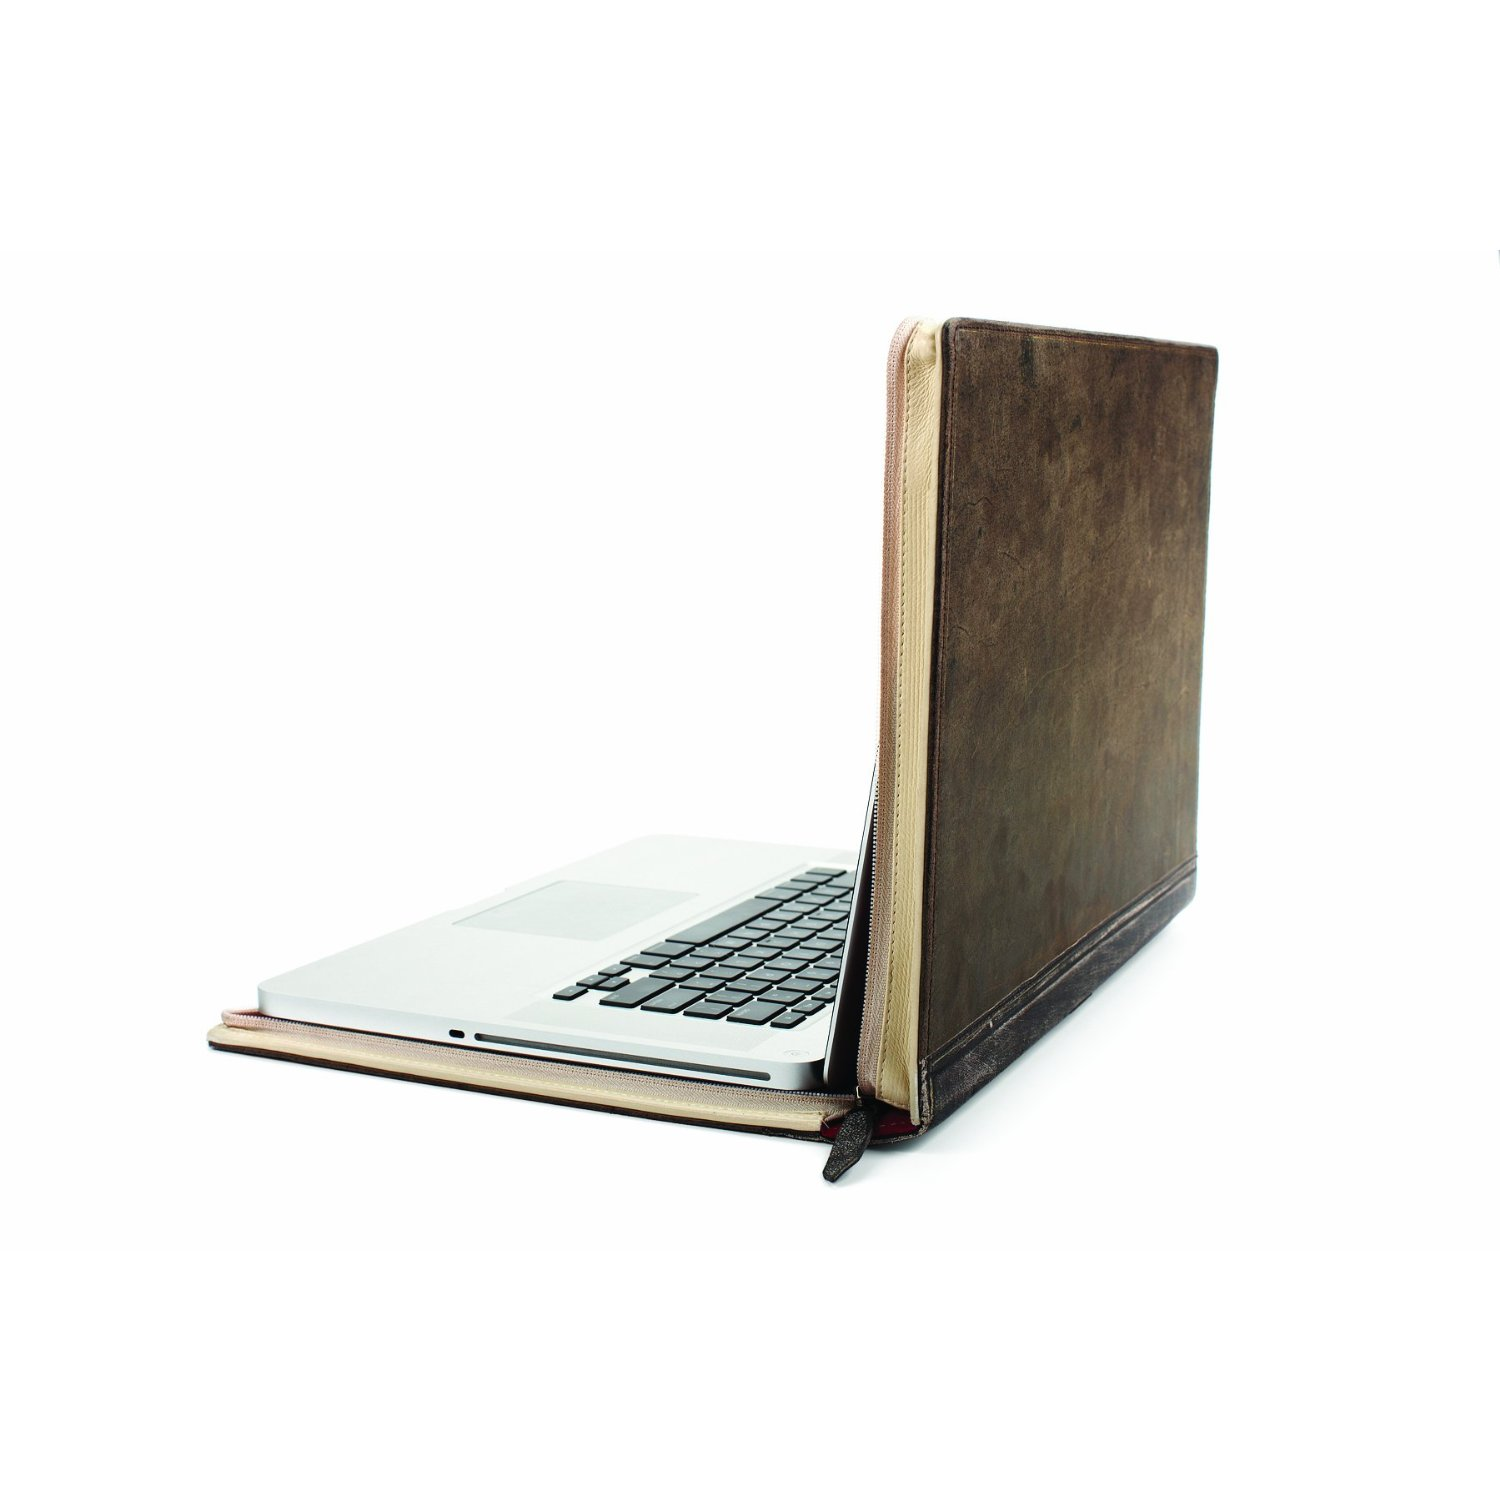 BookBook MacBook